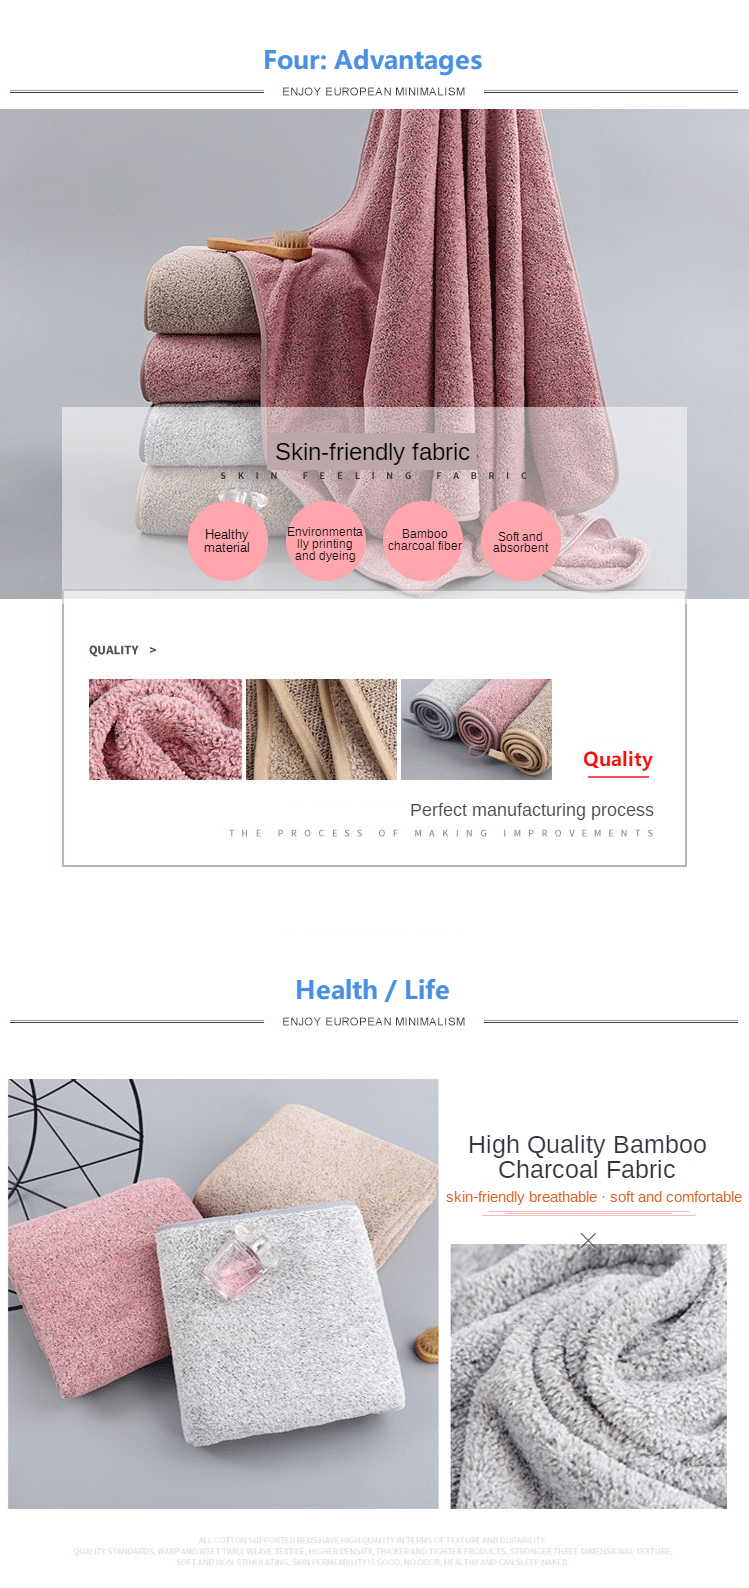 cheap high quality microfiber fabric bath towel  quick drying  hand towel magic cool feel microfiber ice towel